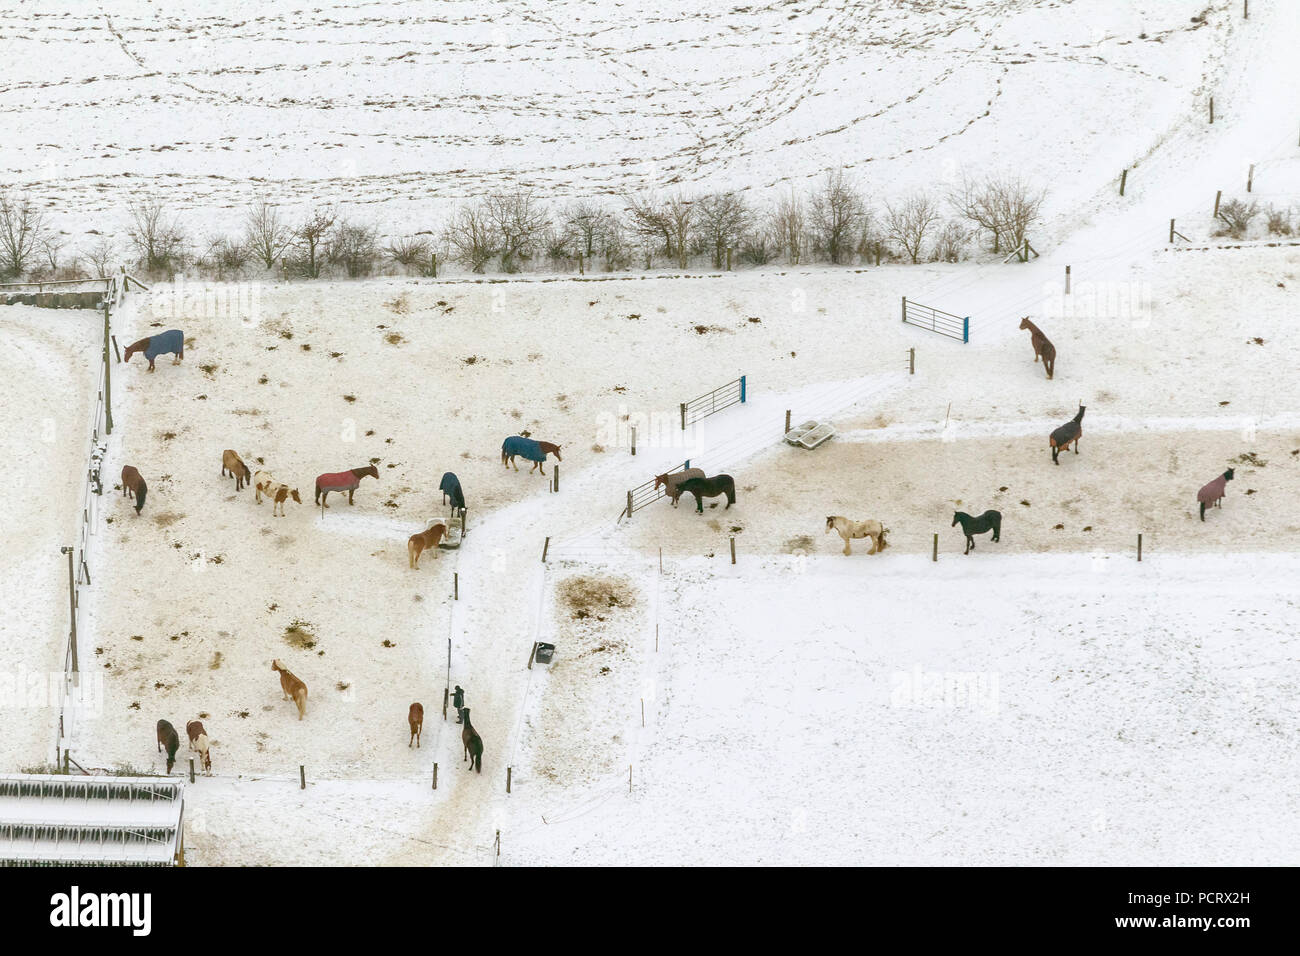 Aerial view, Horses in the snow, Essen-Kettwig, stables Laupendahler country road, paddock, Essen, Ruhr area, North Rhine-Westphalia, Germany, Europe - Stock Image